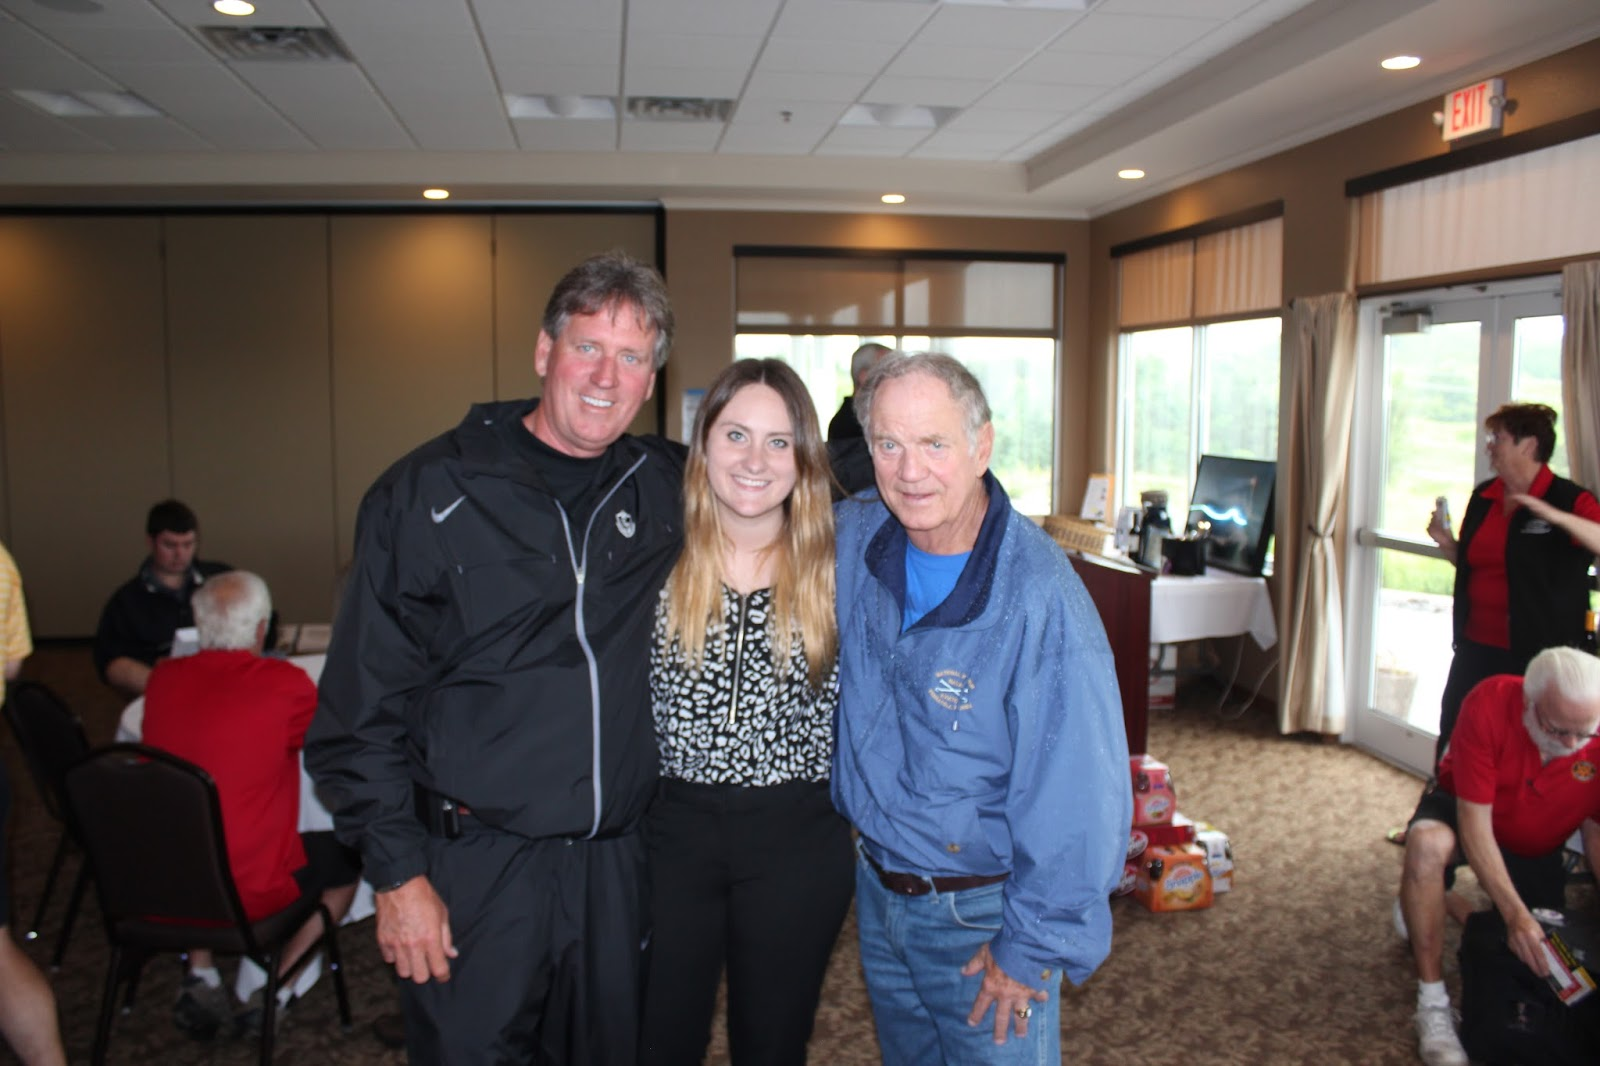 eau claire ford lincoln quick lane nice news recap of the eau claire morning rotary 9th annual. Black Bedroom Furniture Sets. Home Design Ideas